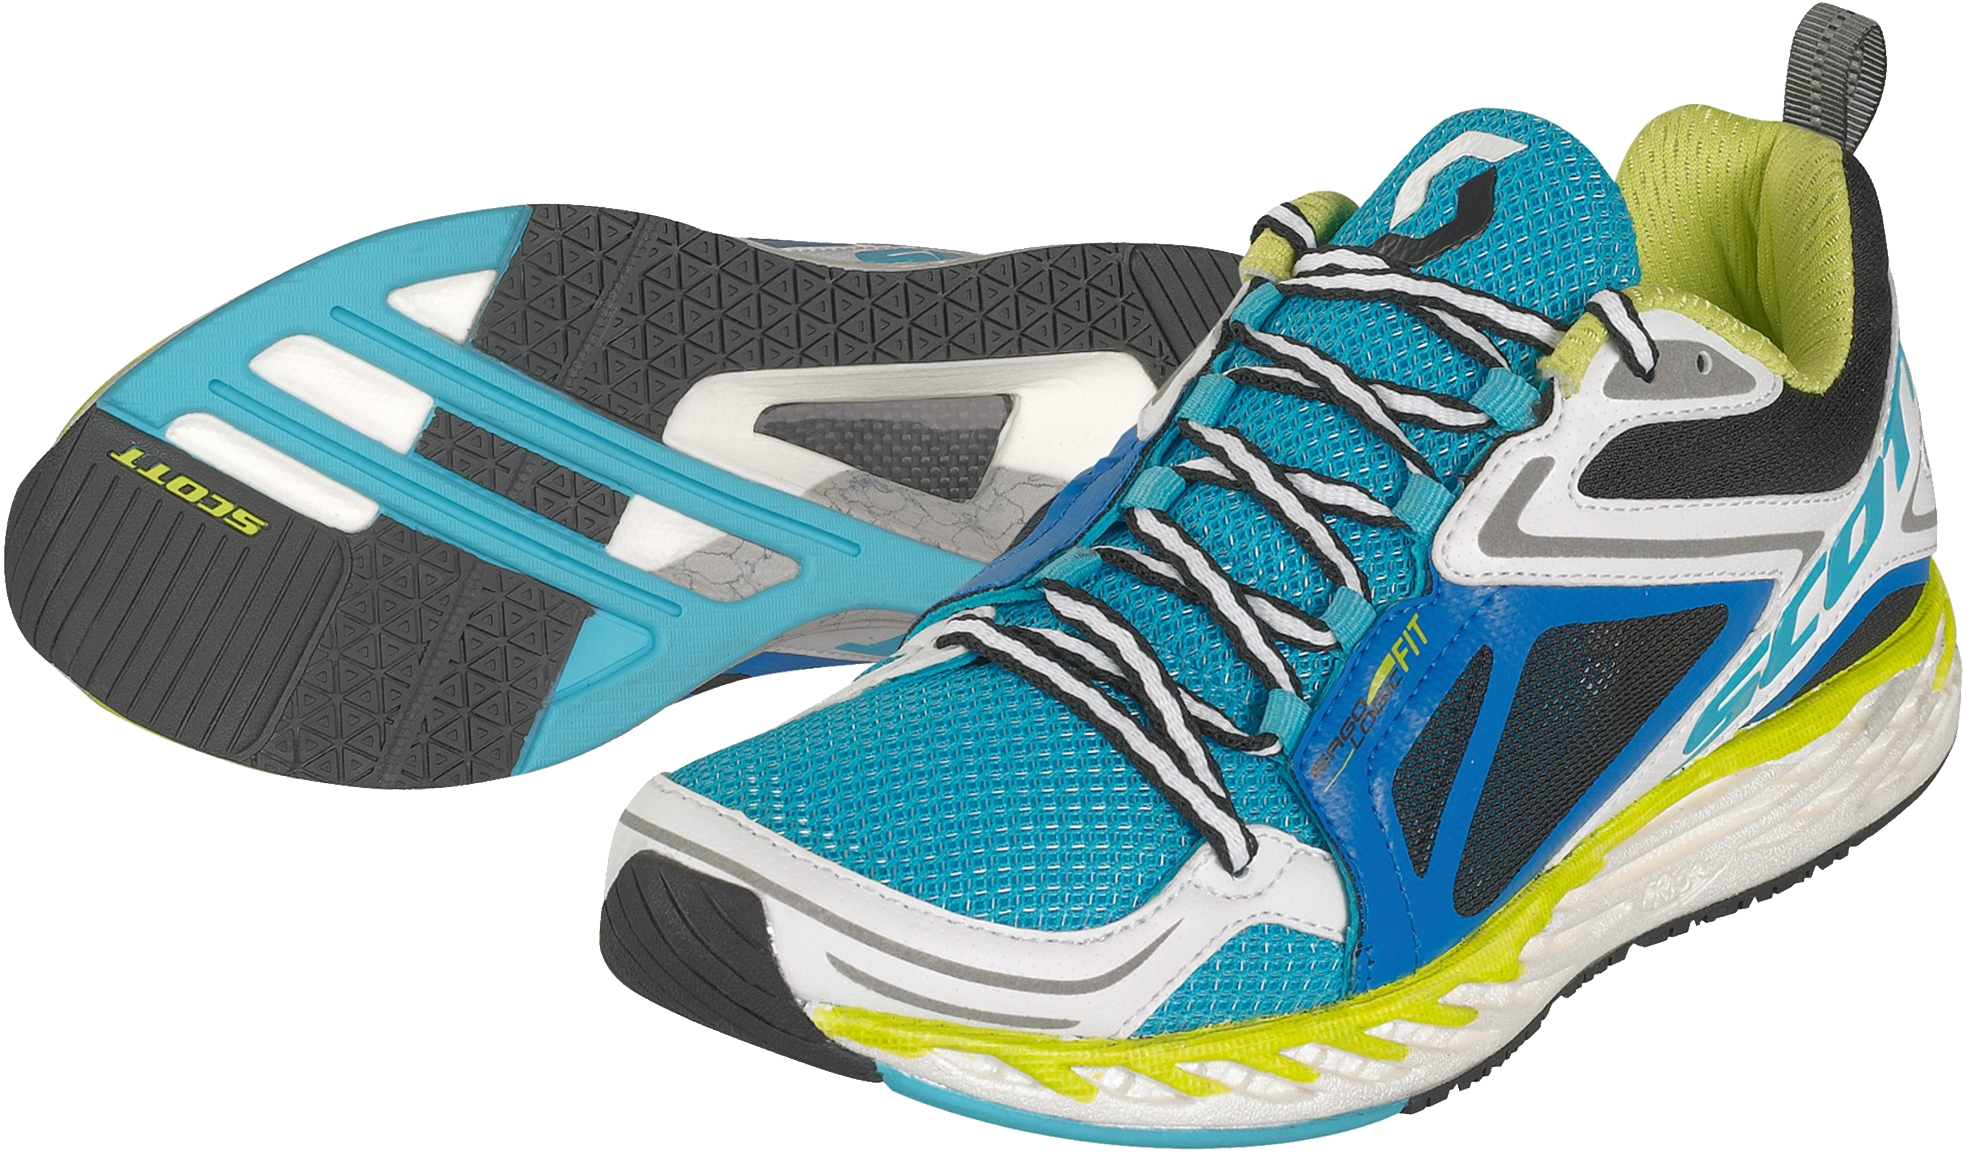 Running Shoes Png Image Clipart image #45060